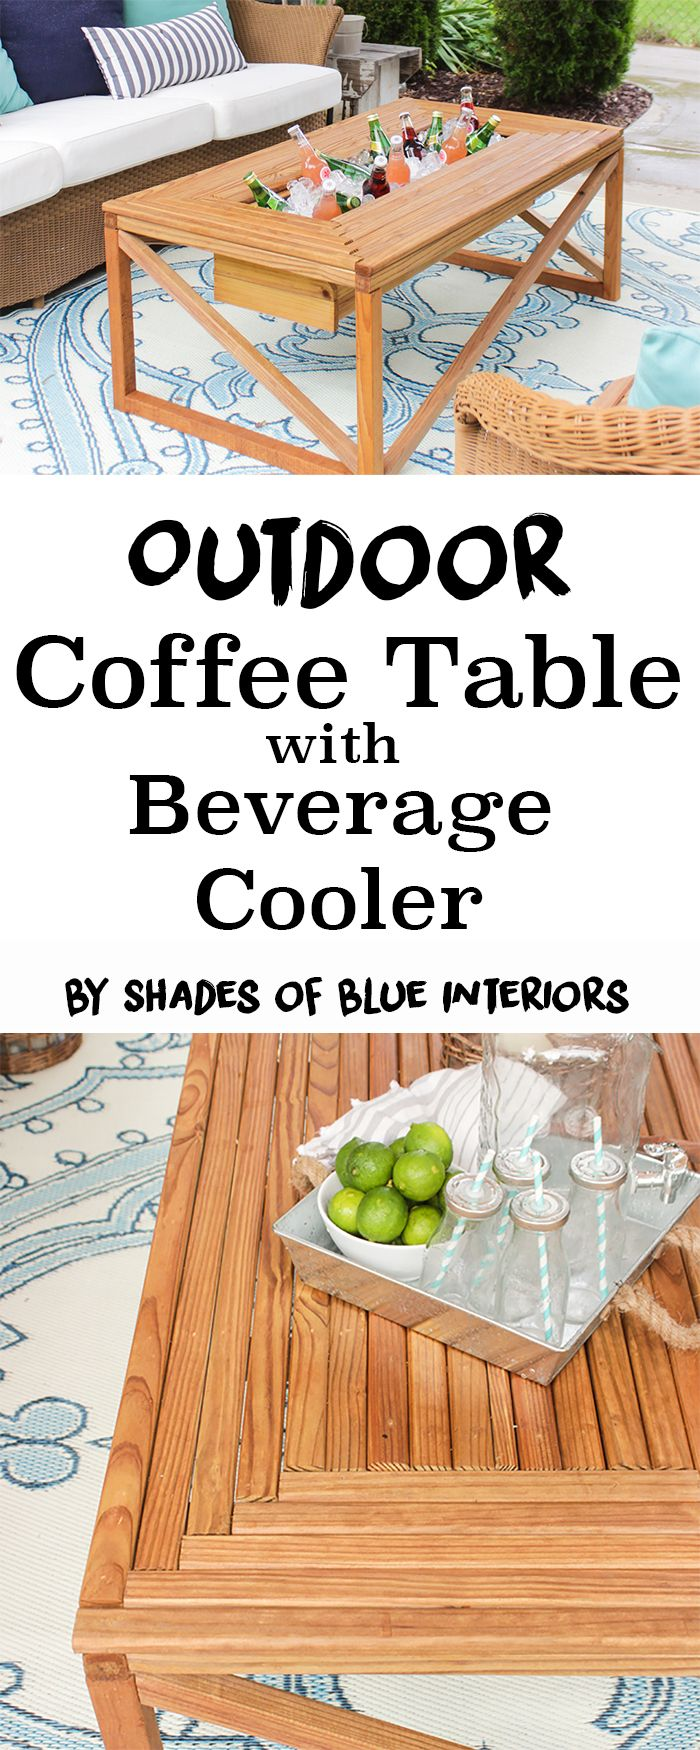 Beer Cooler Coffee Table 17 Best Ideas About Outdoor Coffee Tables On Pinterest Outdoors